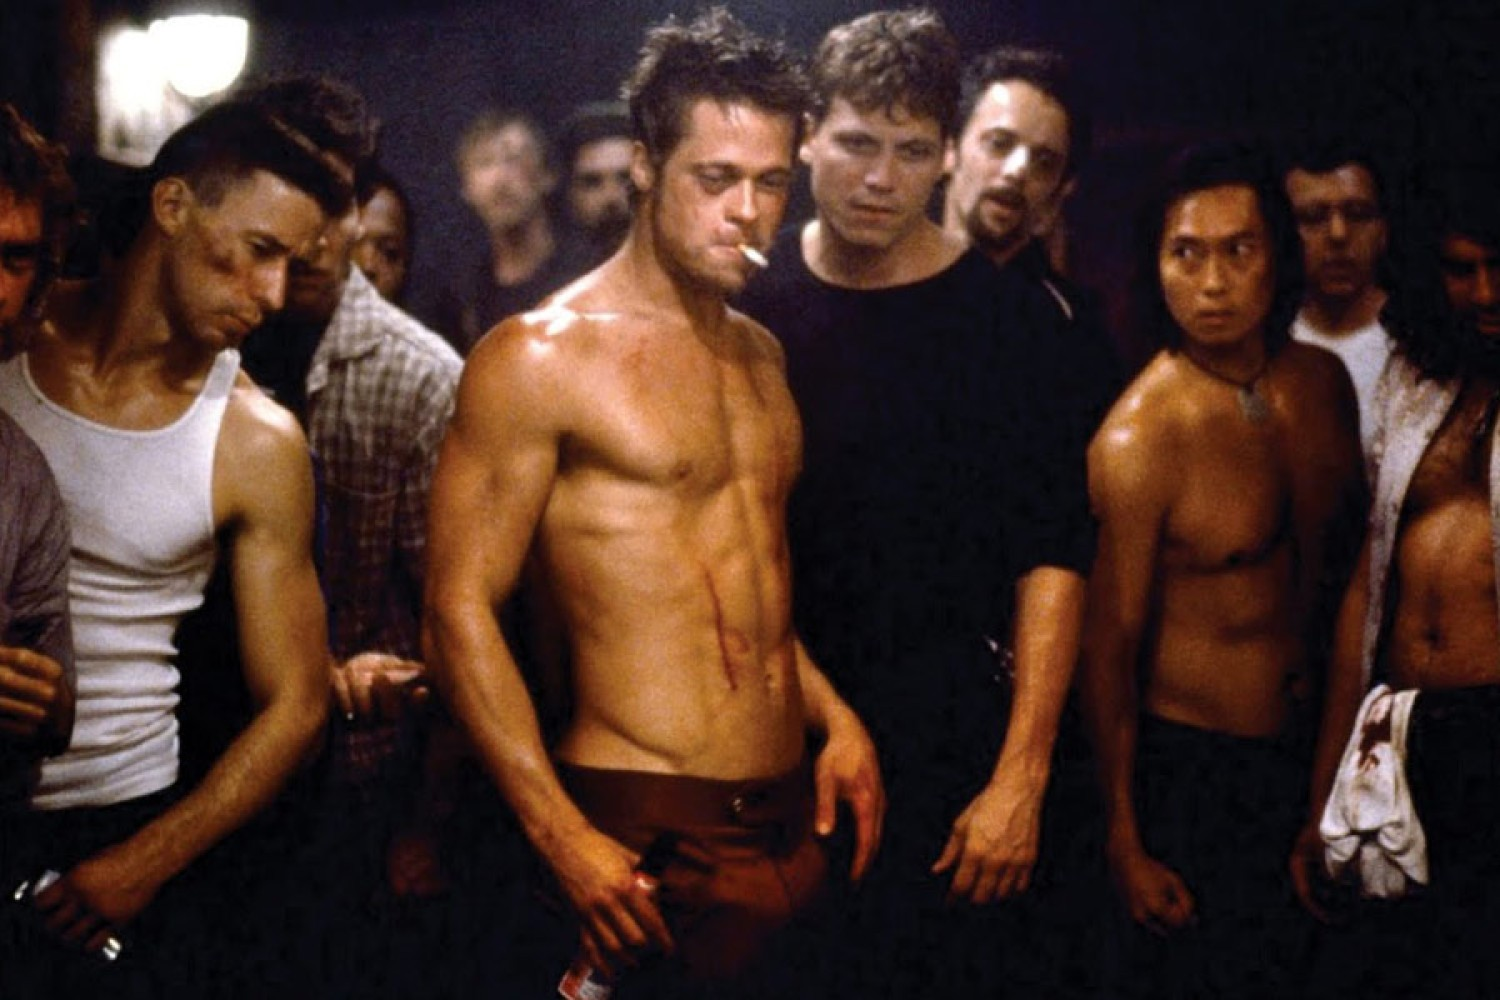 A bare-chested Brad Pitt sets out to brawl in Fight Club (1999)